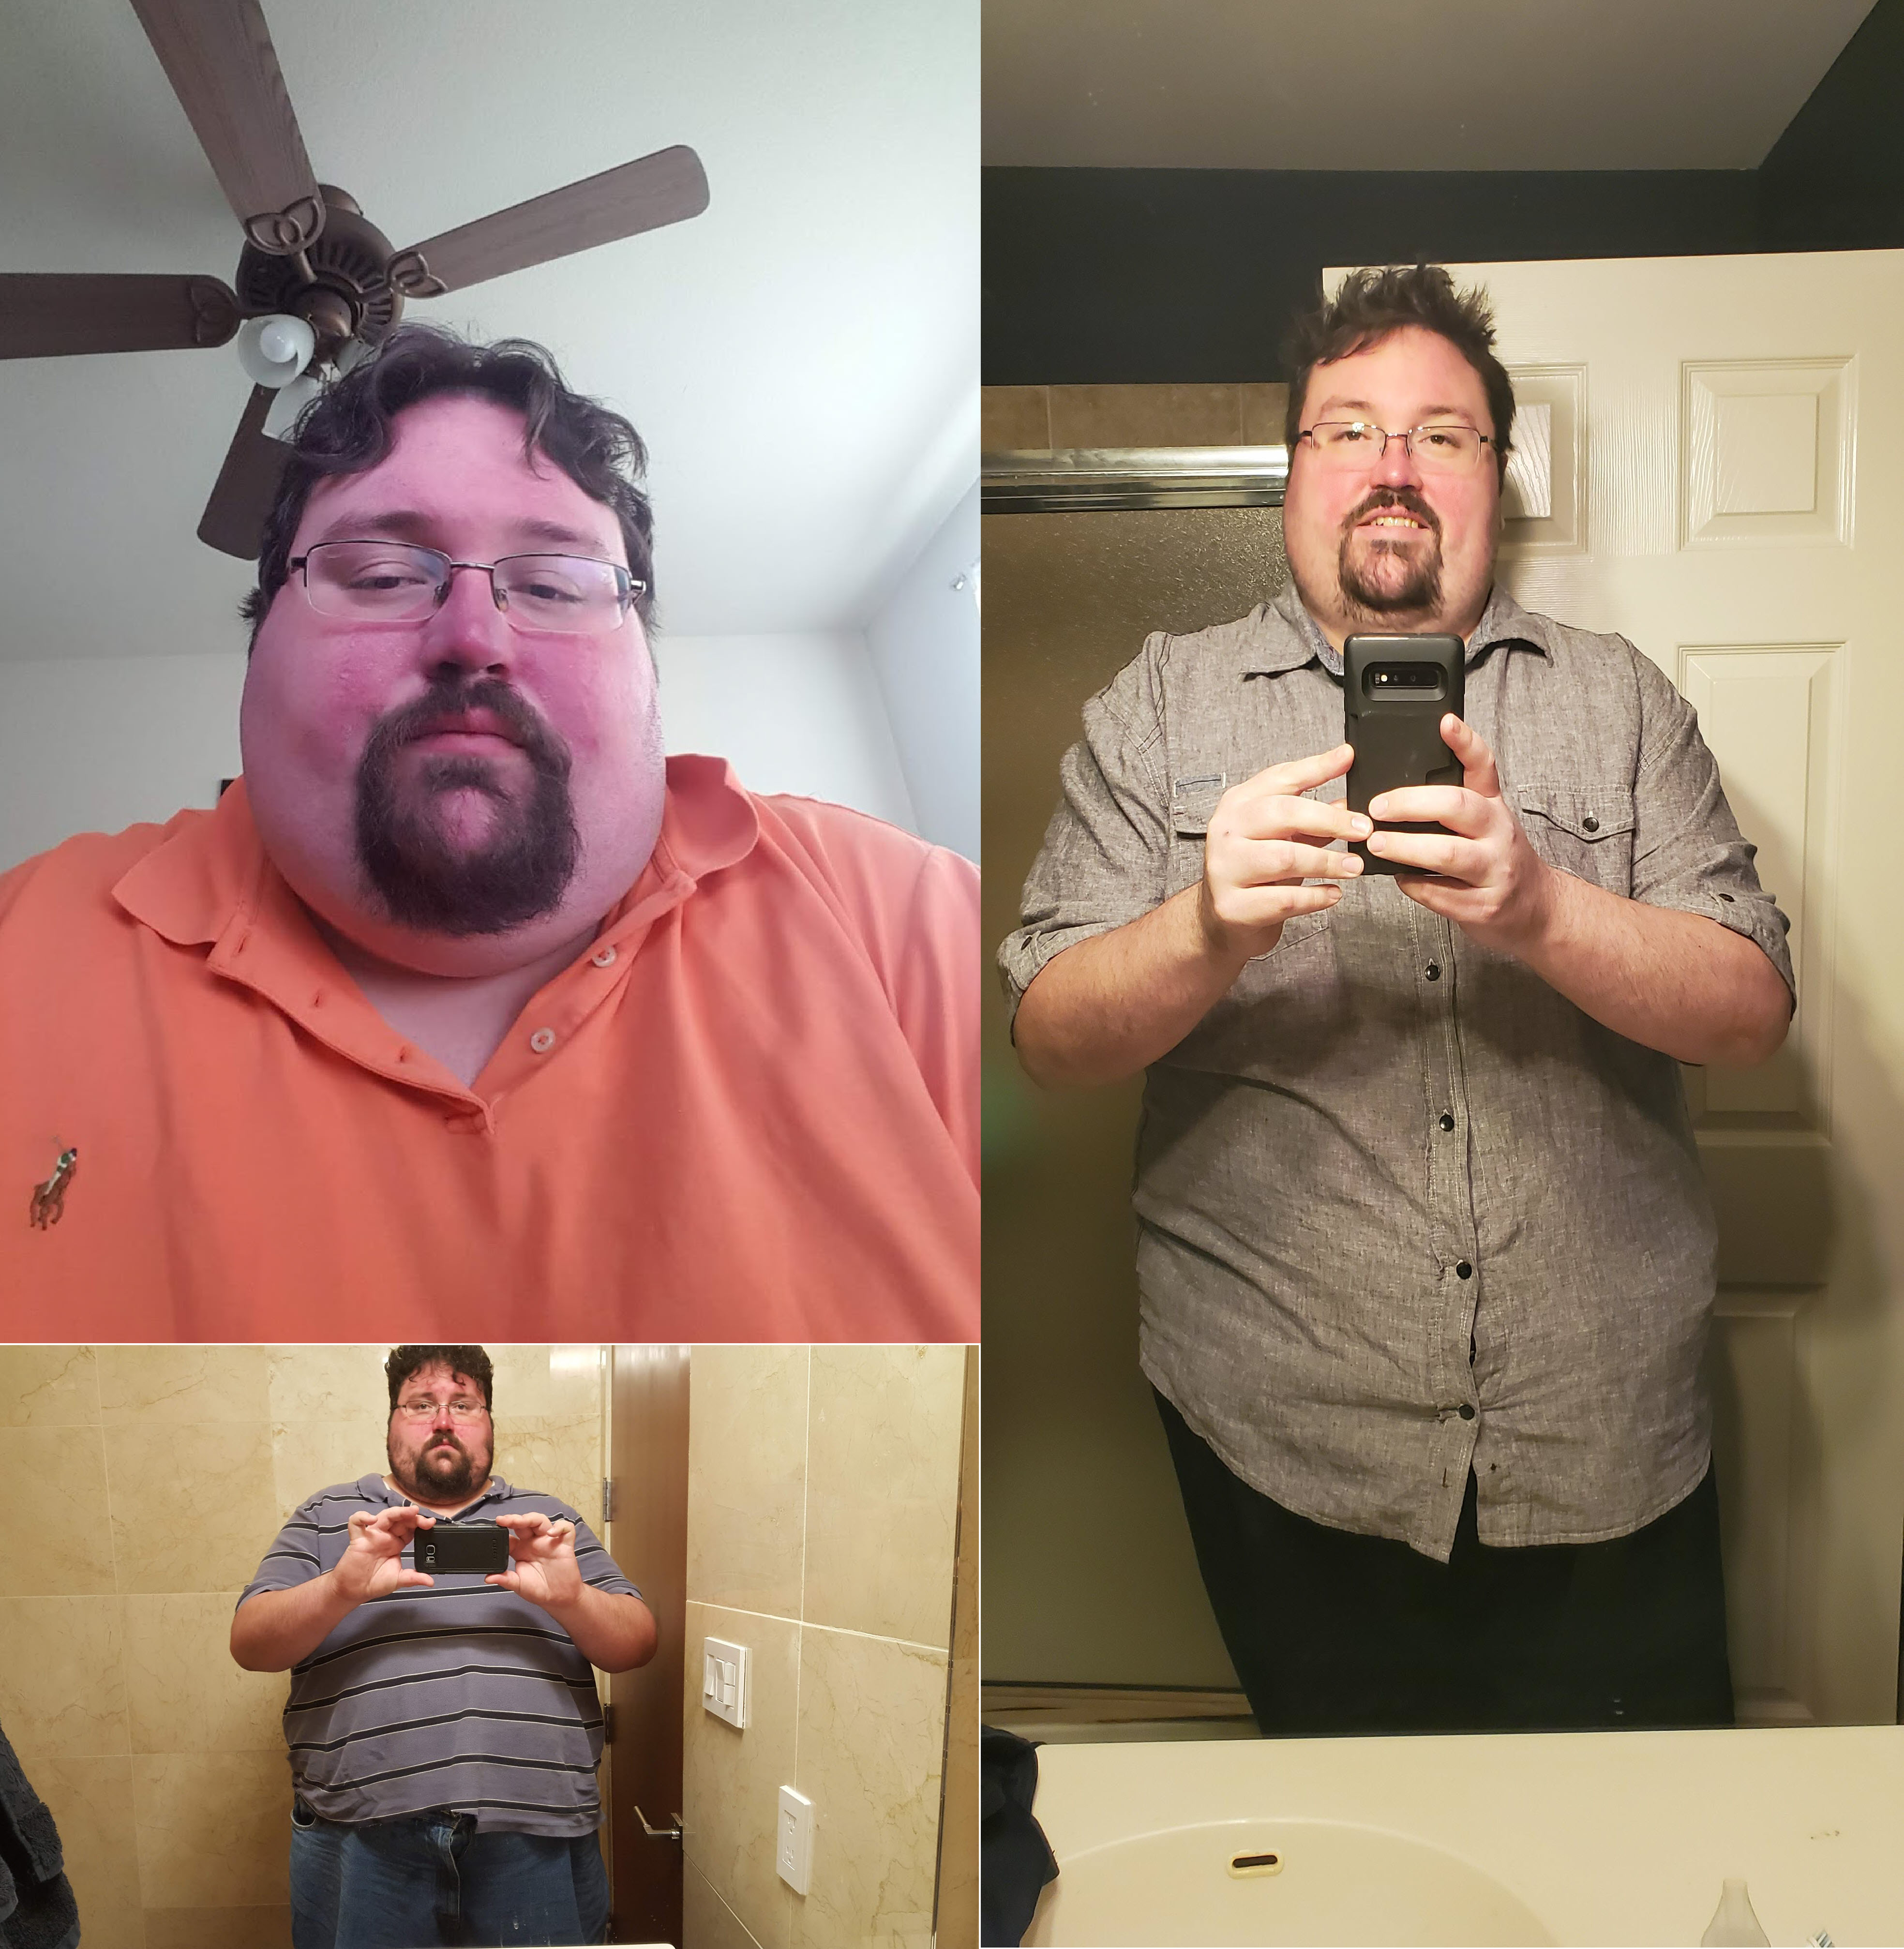 6 feet 3 Male 100 lbs Fat Loss Before and After 475 lbs to 375 lbs